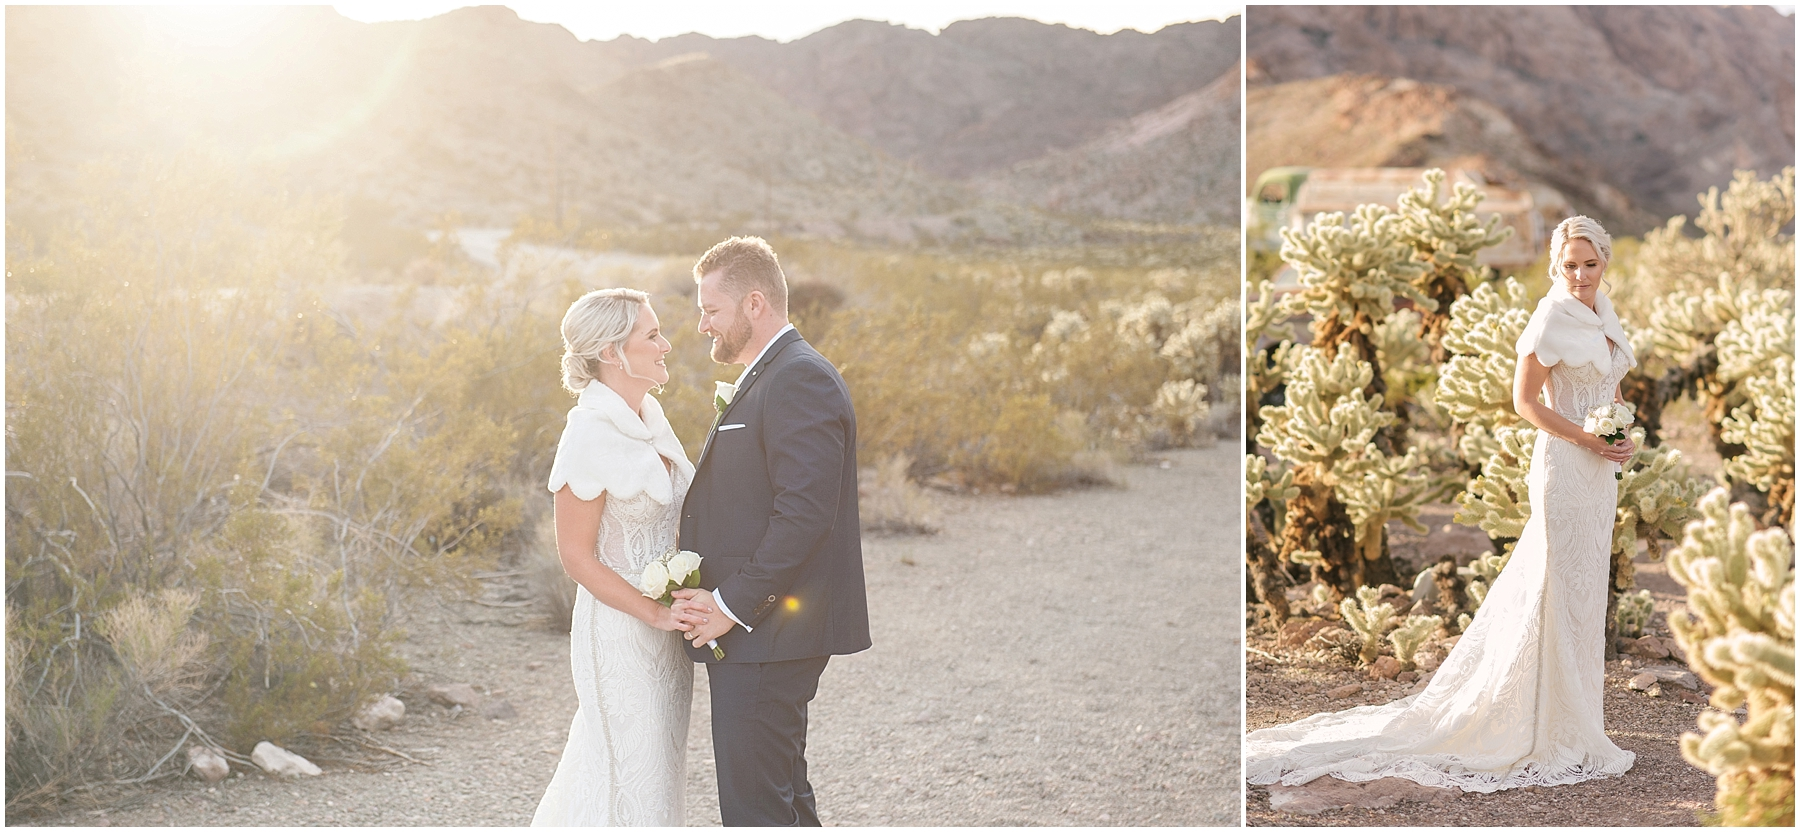 dry_lake_bed_nelson__las_vegas_elopement_photography_blog-05.jpg